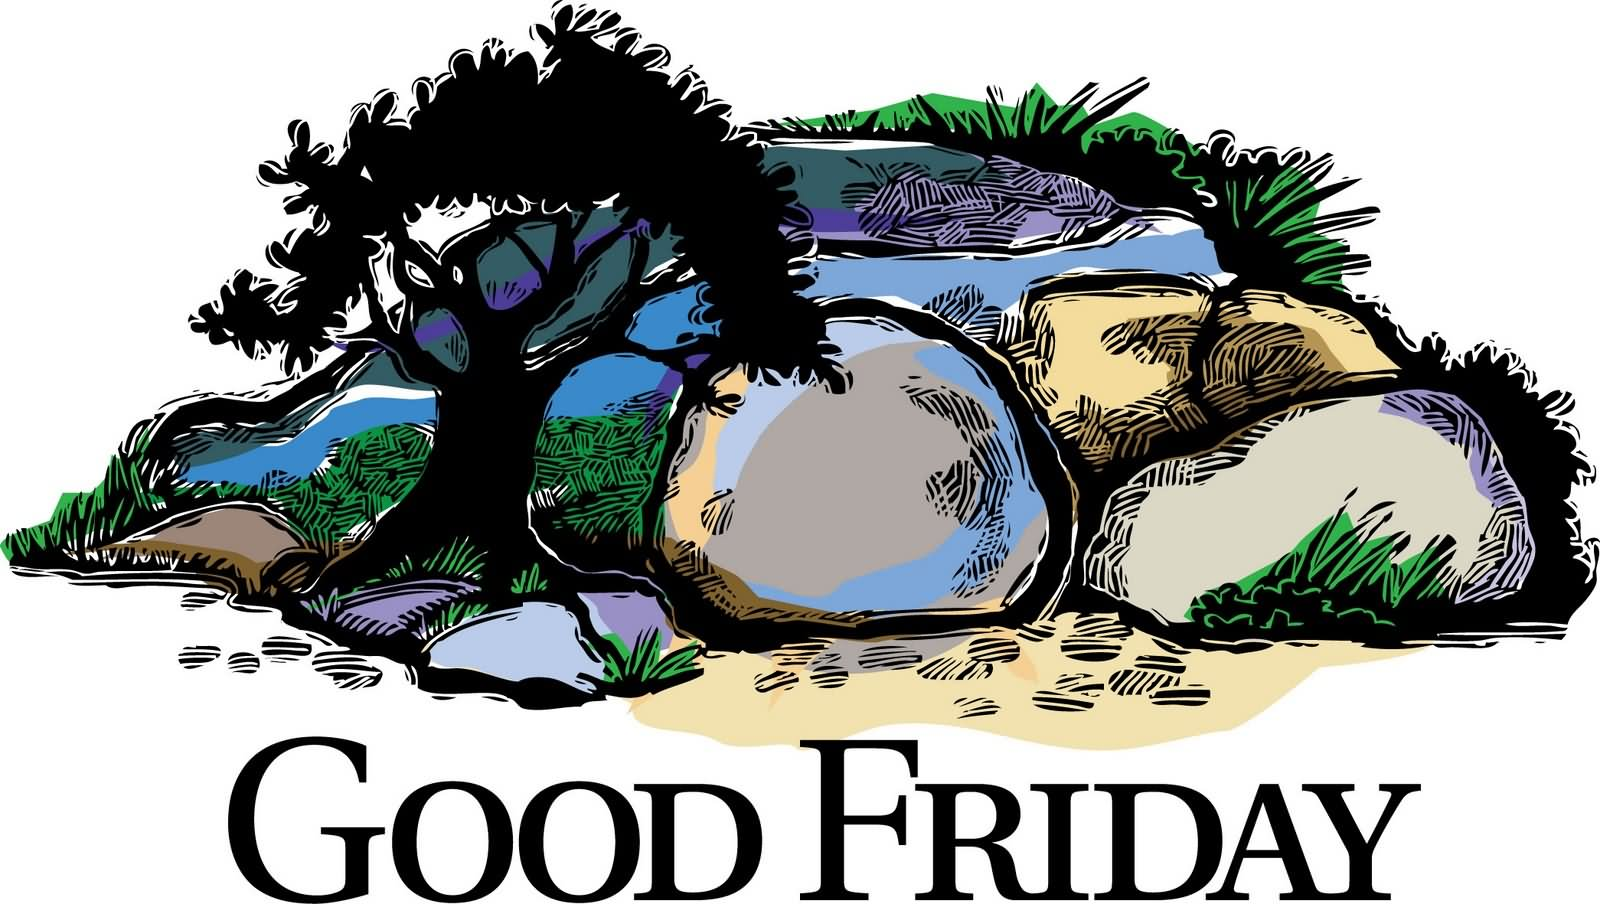 good friday clipart image central schwenkfelder church rh centralschwenkfelder com good friday clip art free good friday service clipart